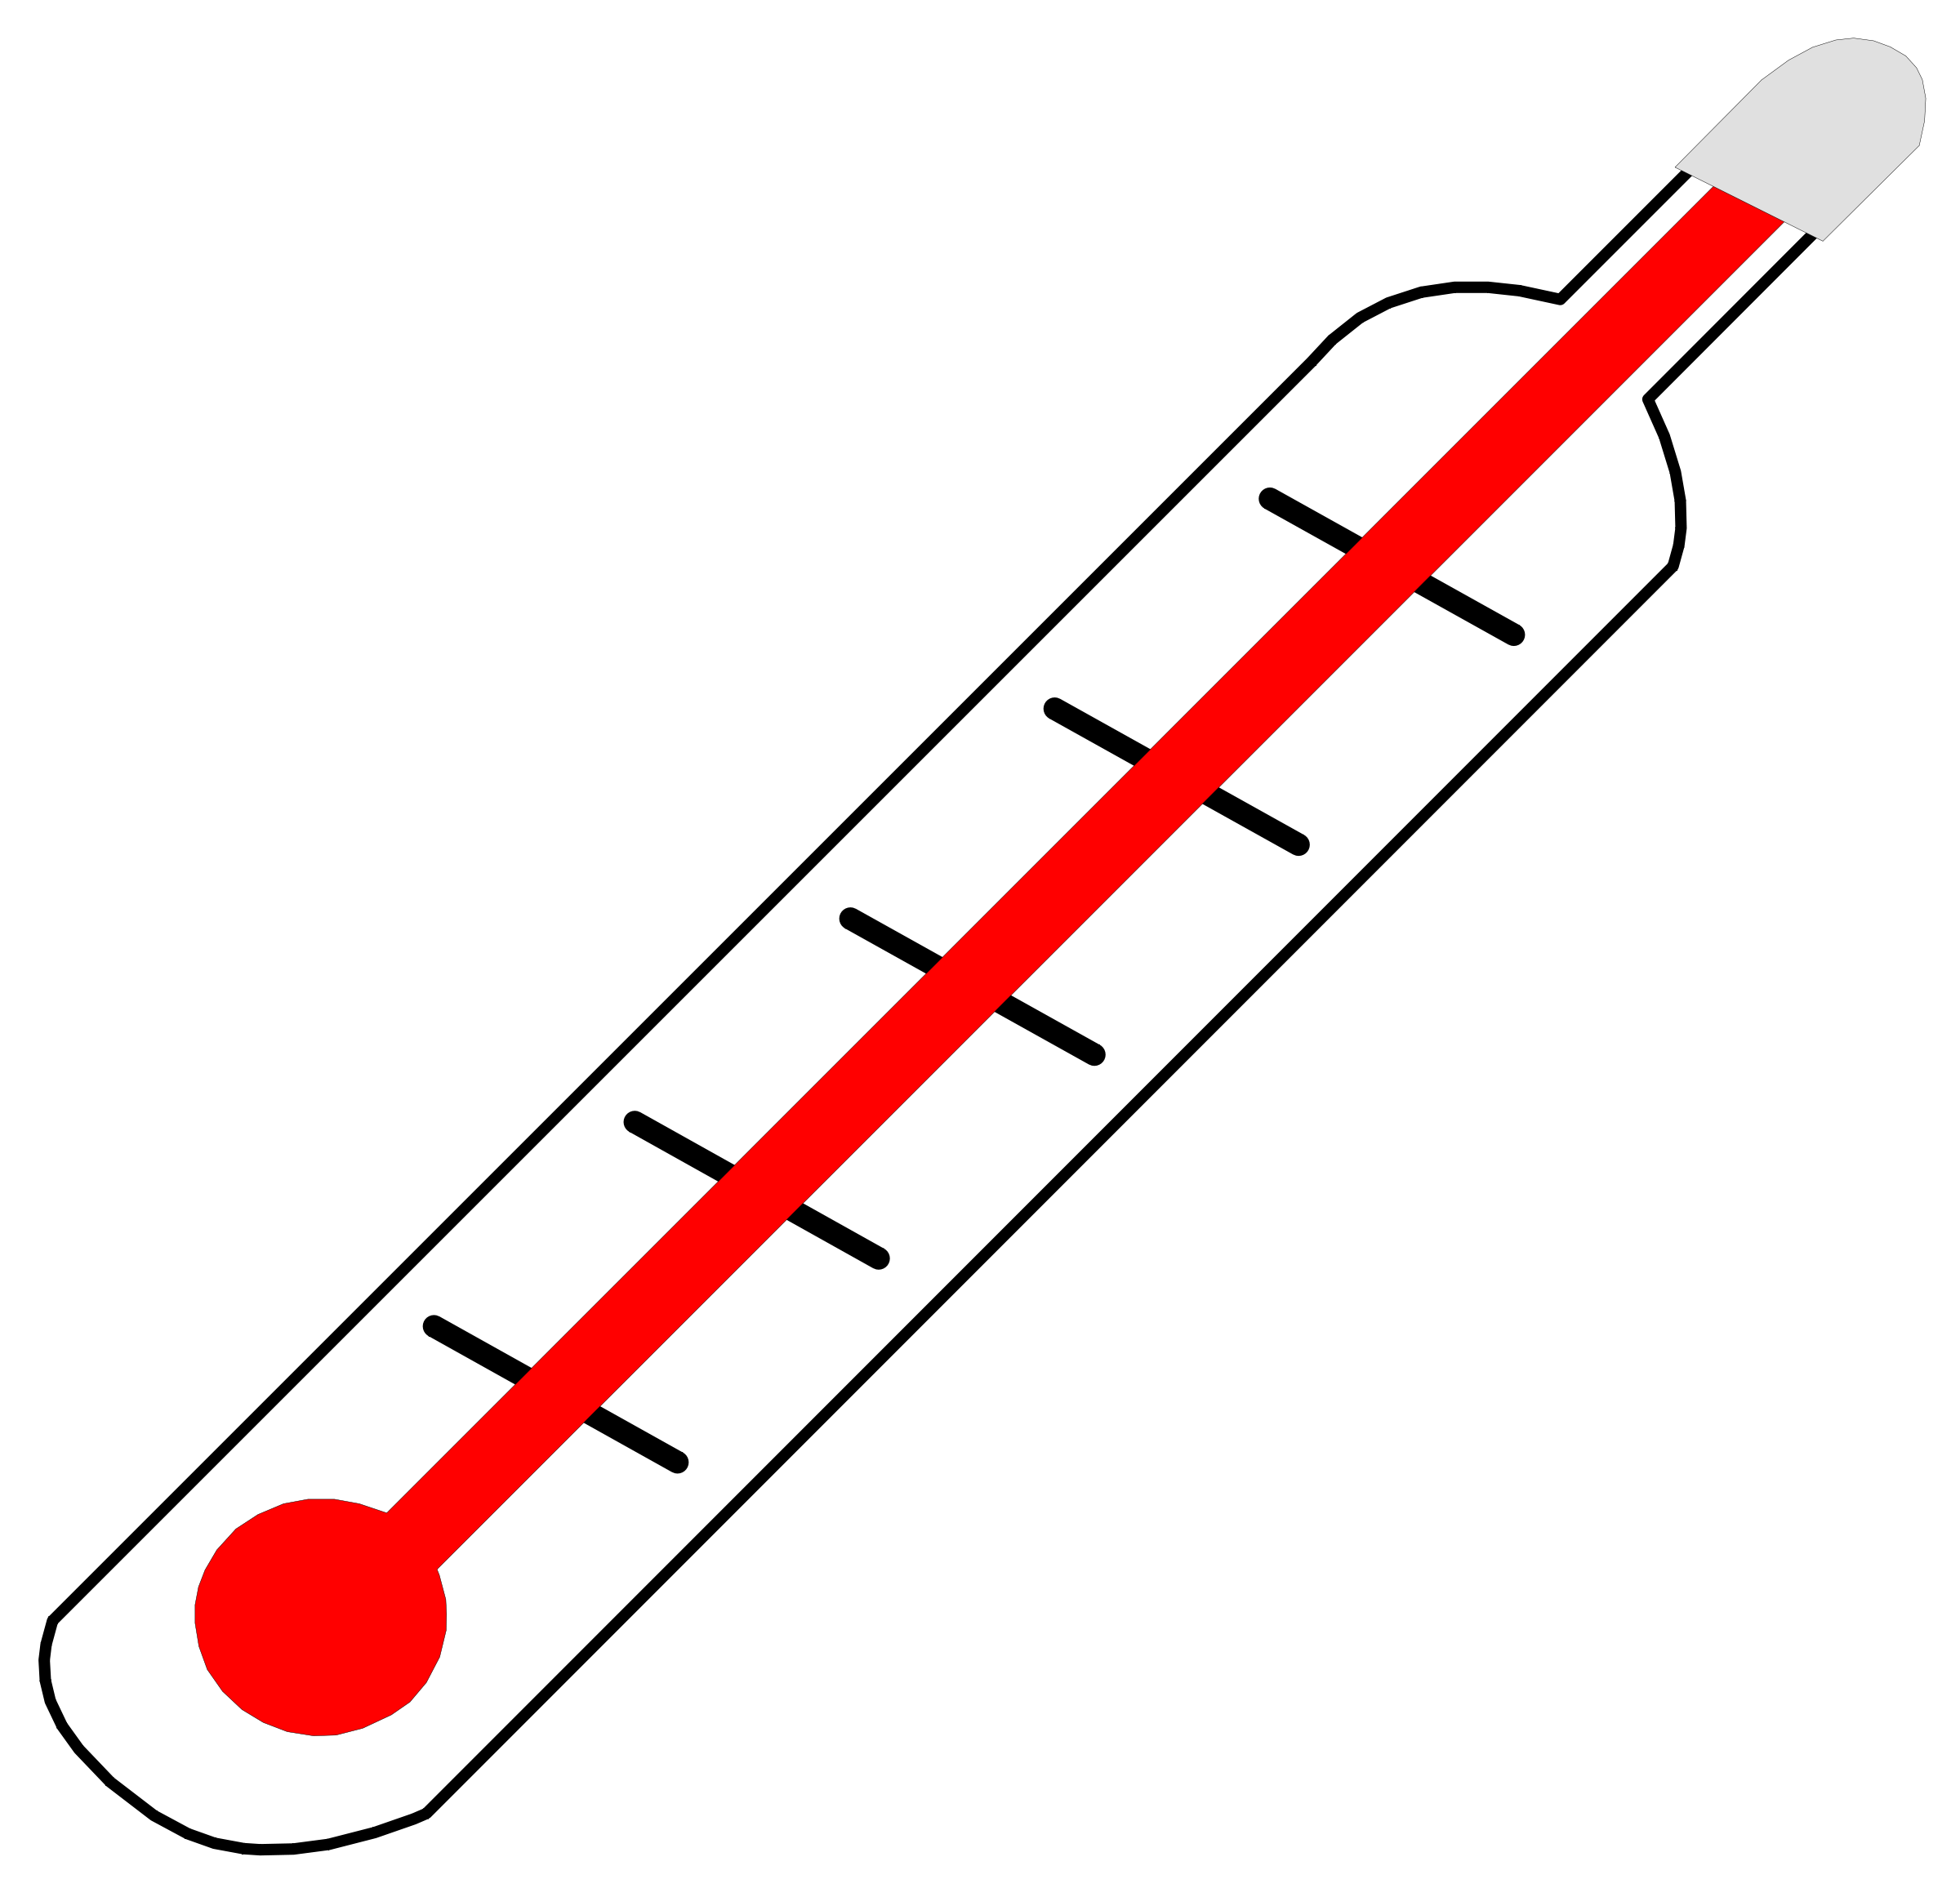 frozen-thermometer-clip-art-thermometer-clipart-thermometer-clip-art    Thermometer Fever Clipart